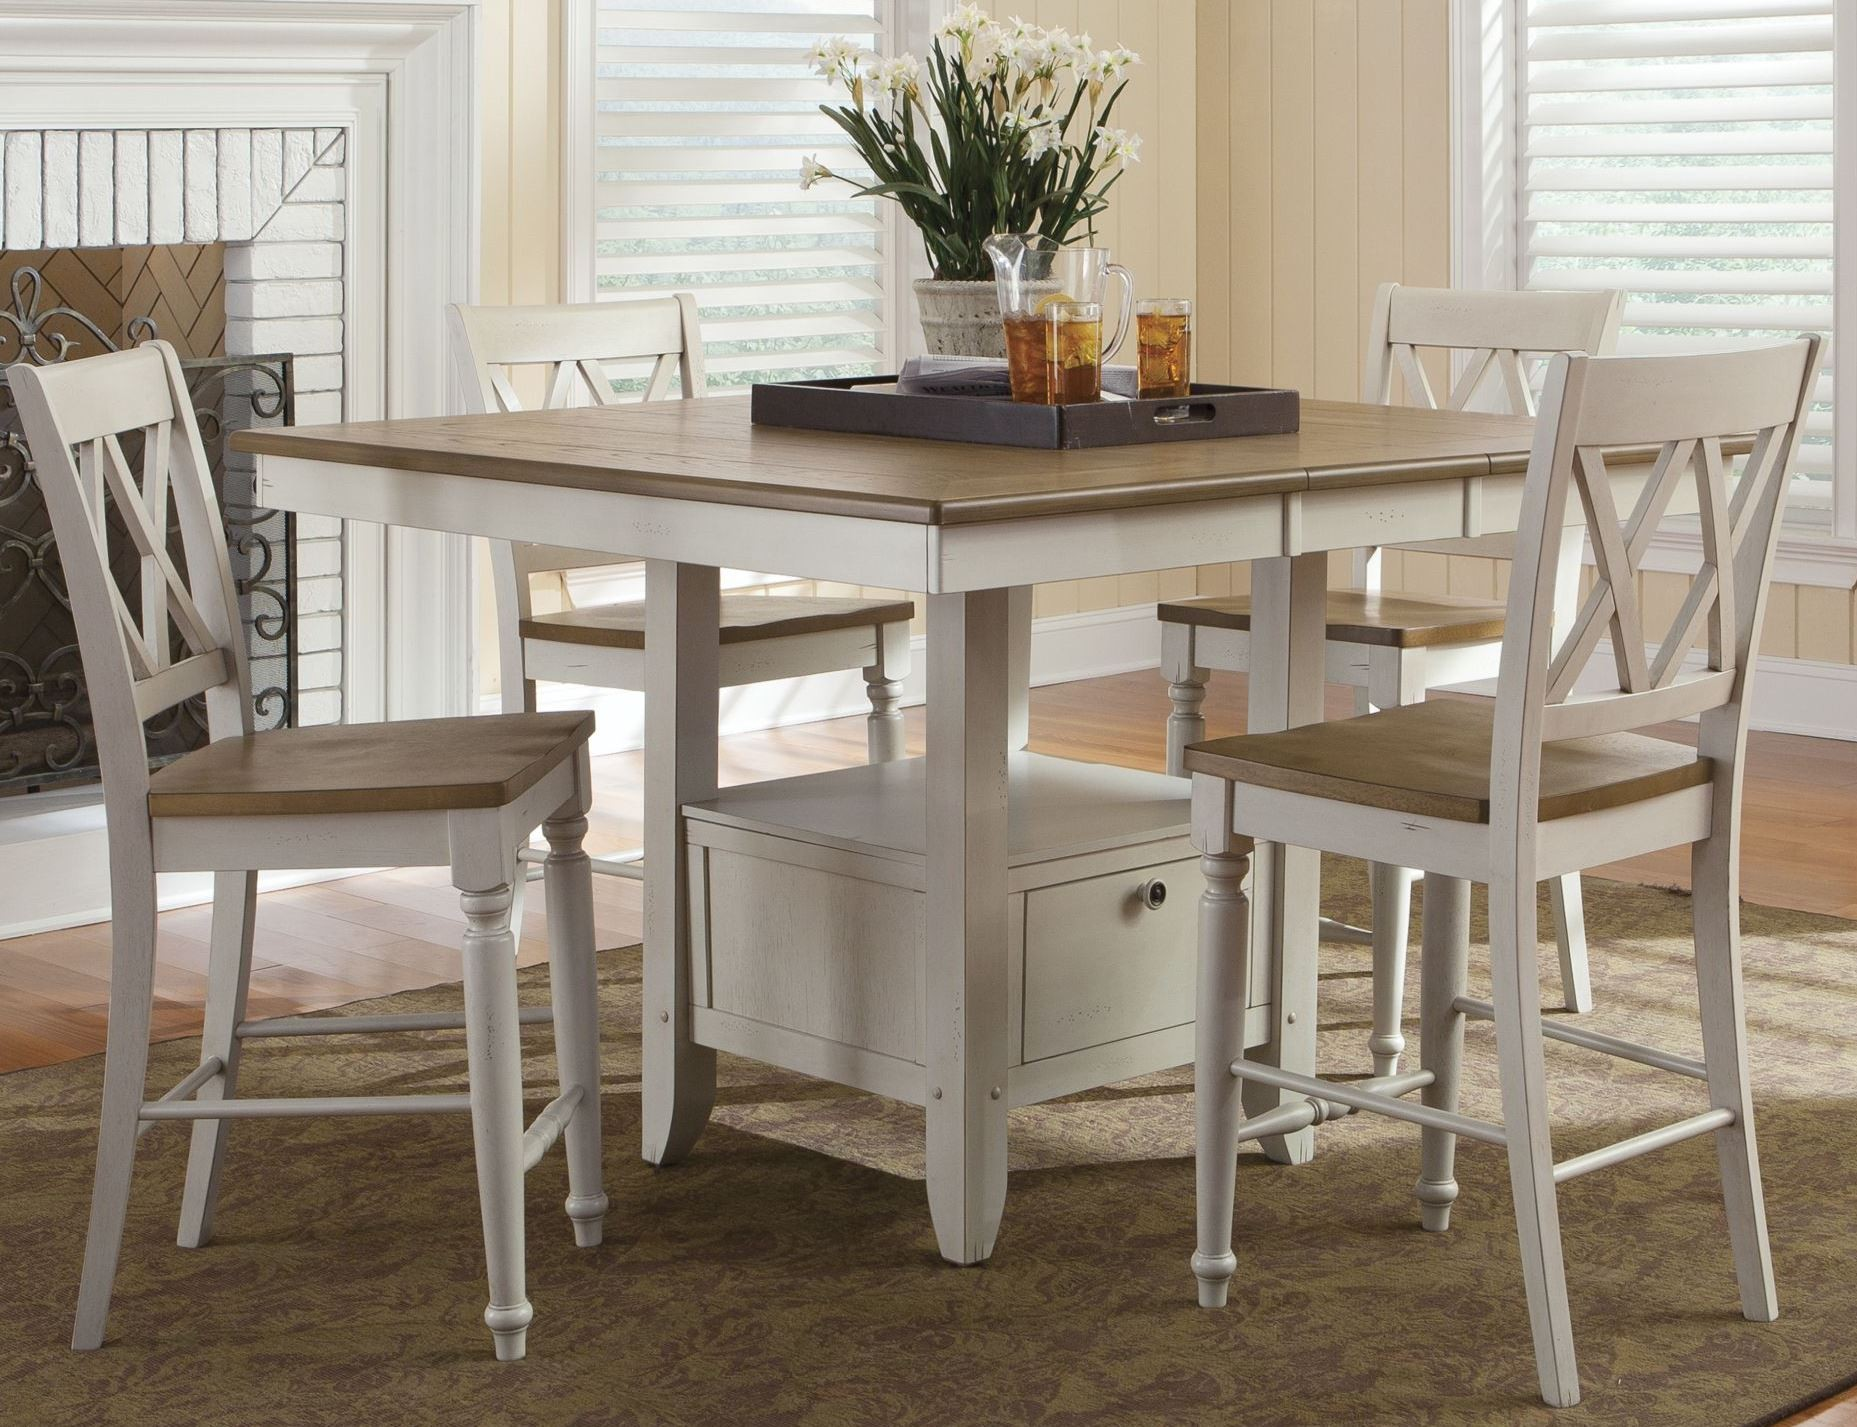 Al fresco iii gathering dining room set from liberty 841 for Small white dining room sets